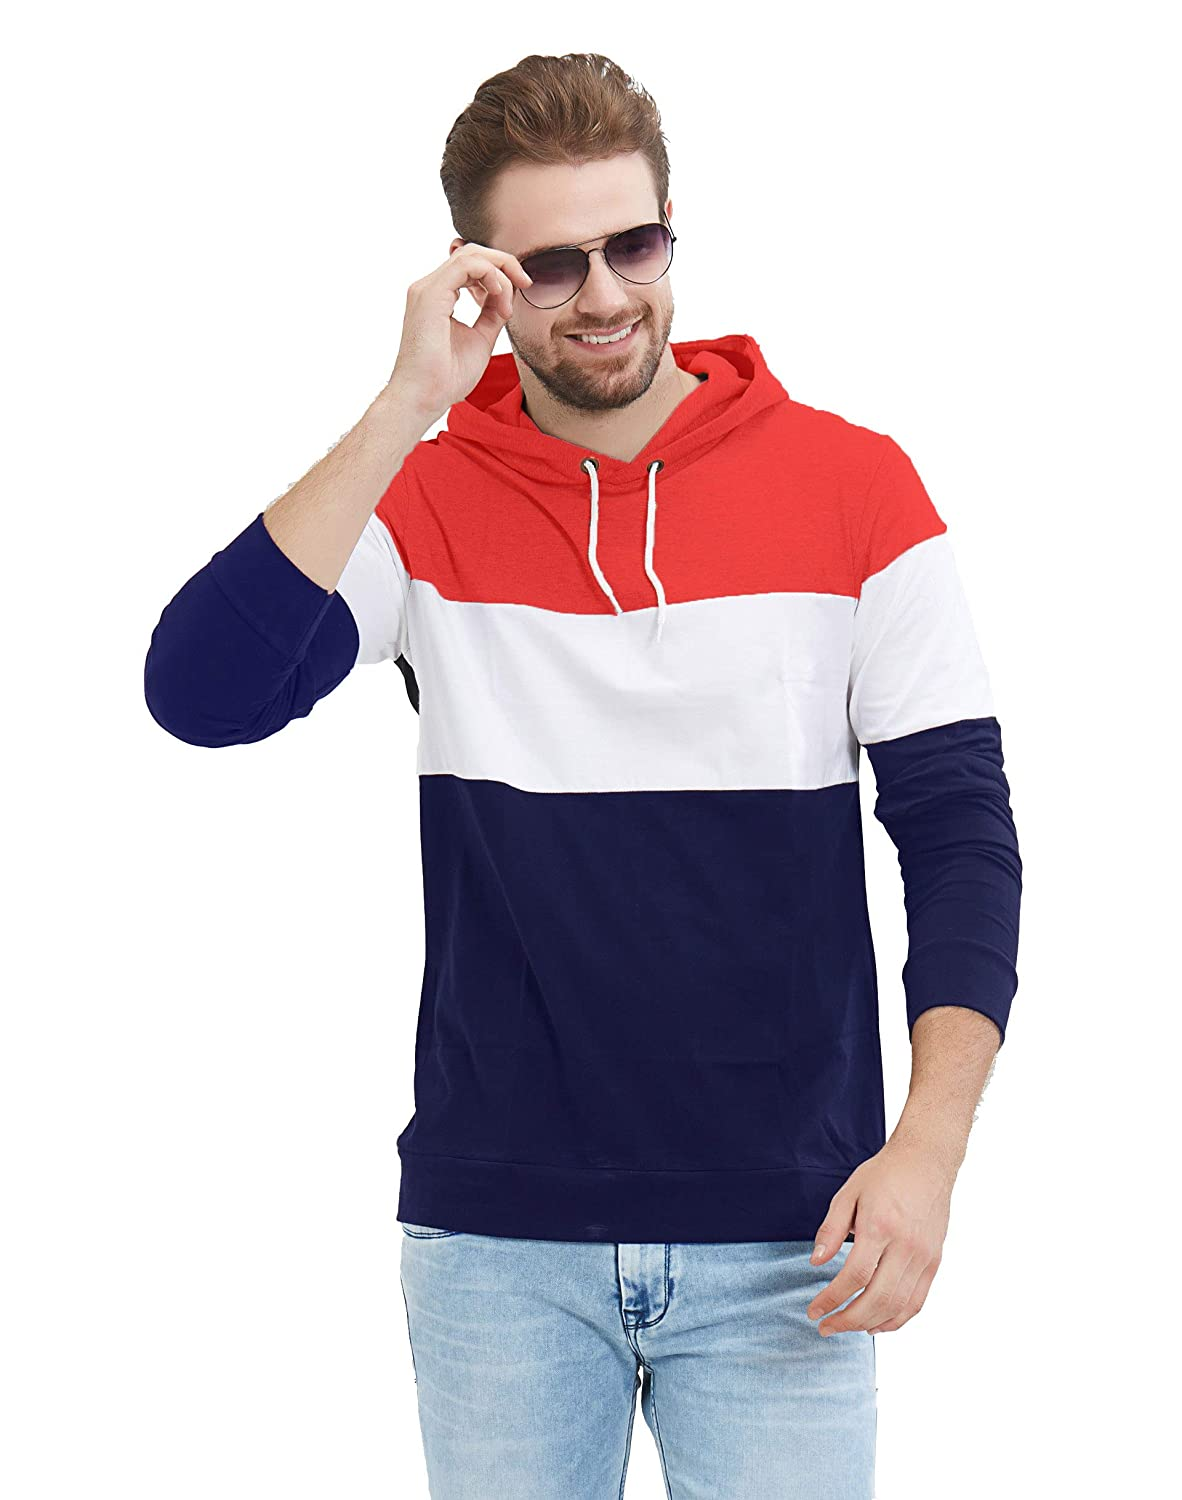 Men's Full Sleeve Red, White, Navy Hooded T-Shirt (100% Cotton, Bio-Washed)